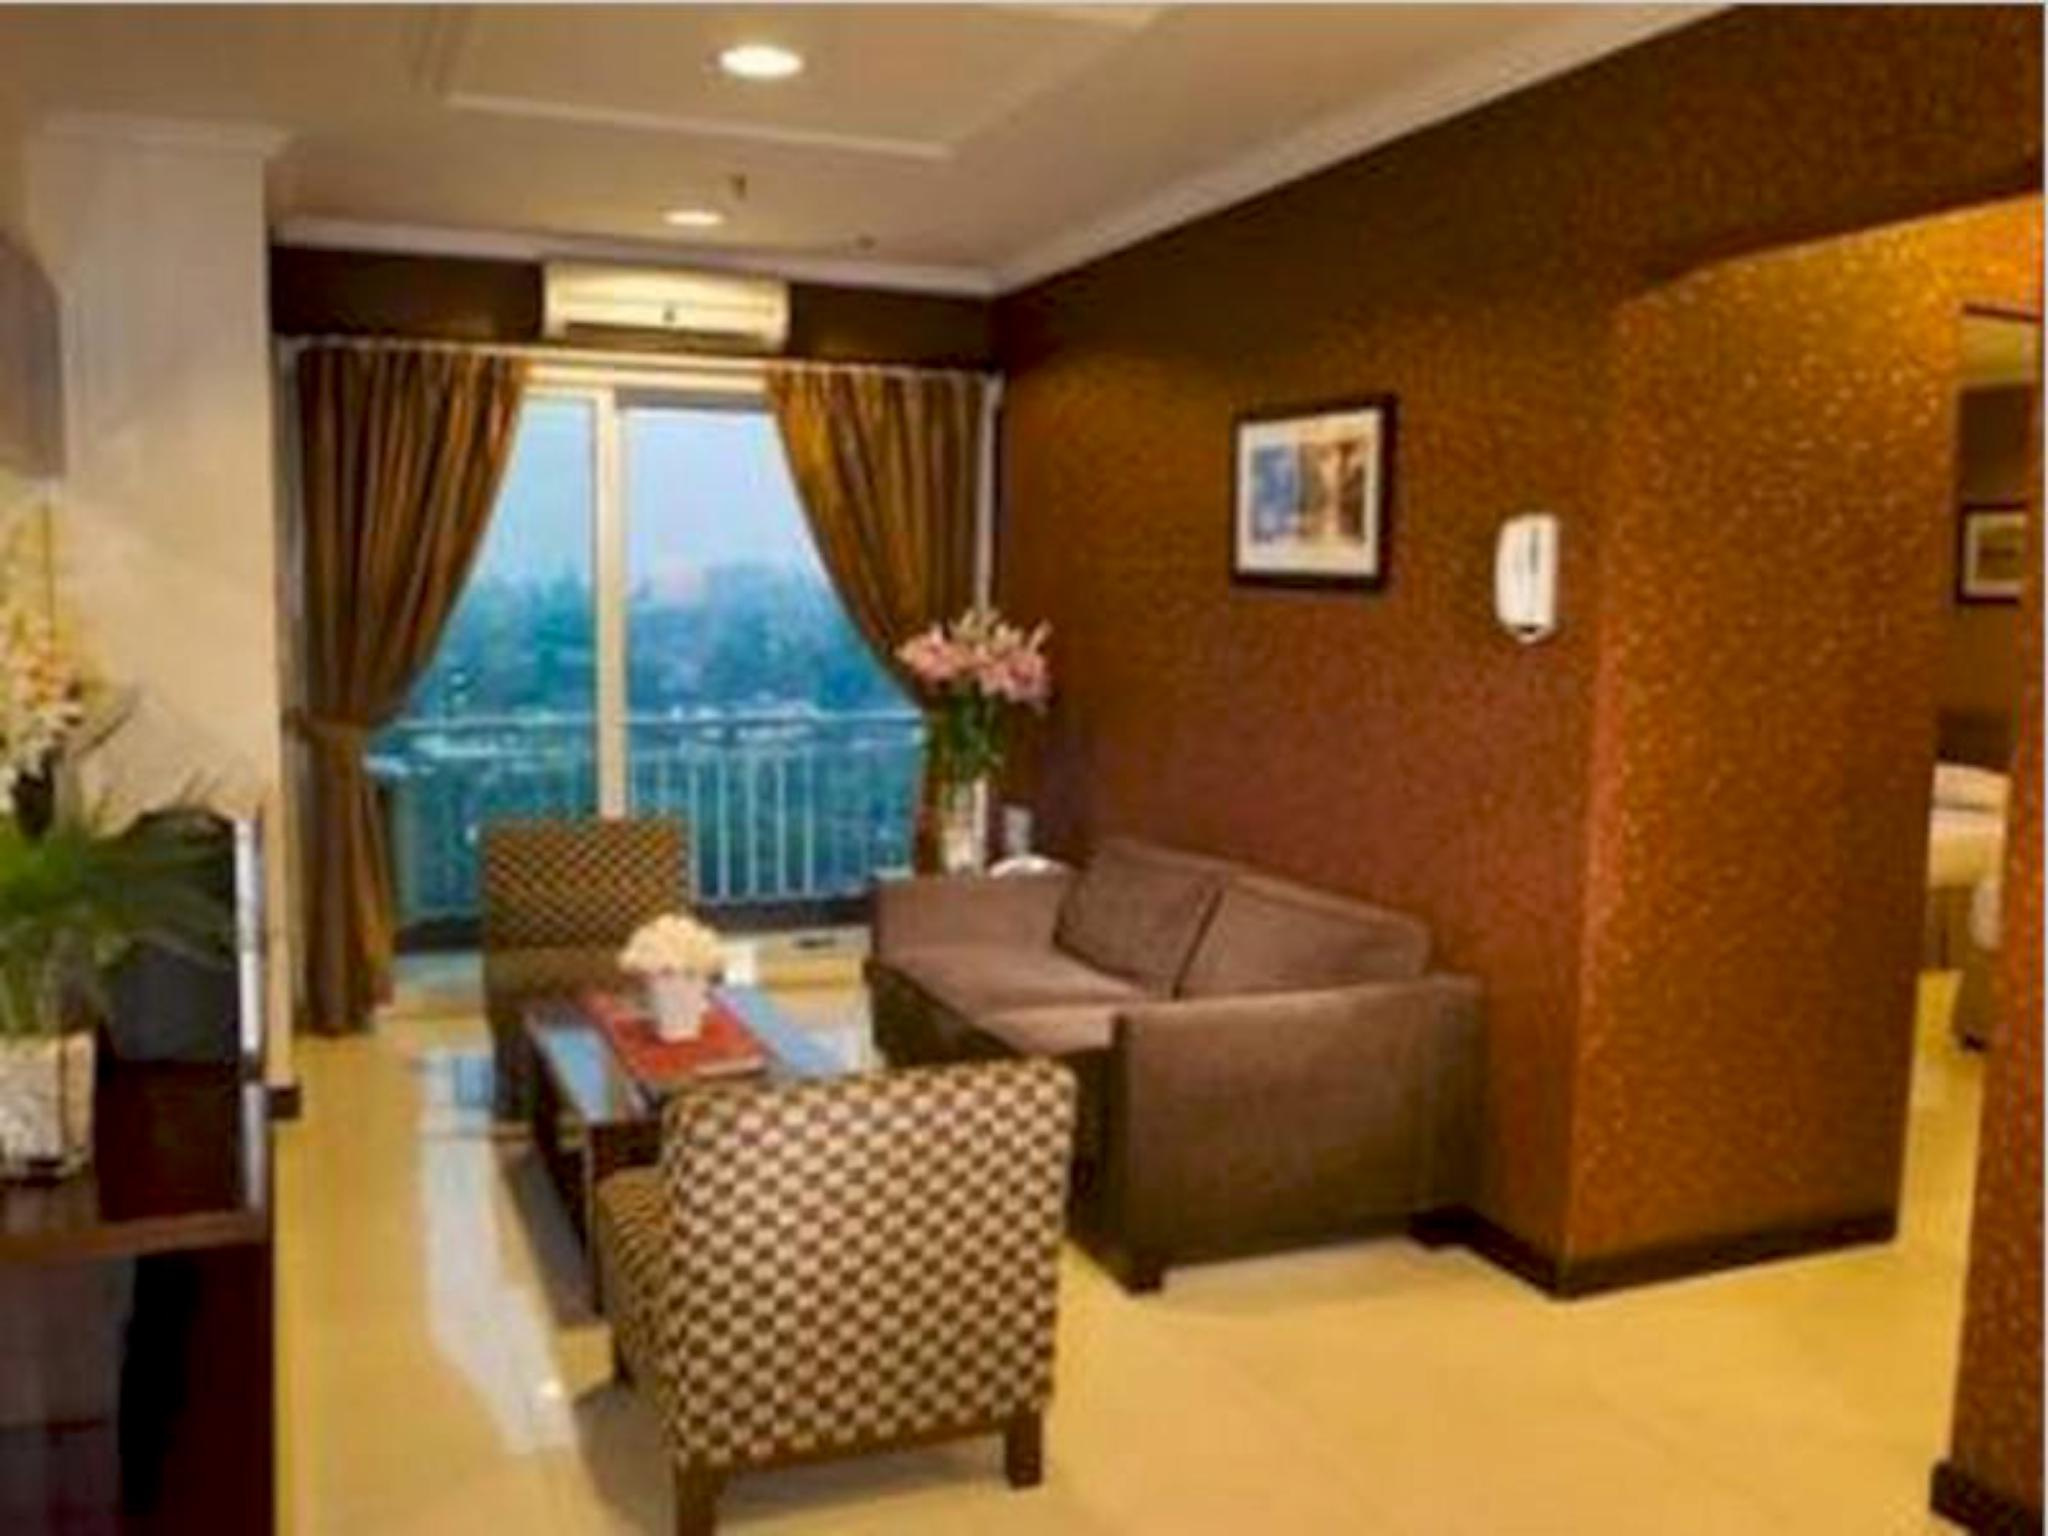 Suite Executive 3 Kamar Tidur (3 Bedroom Executive Suite)